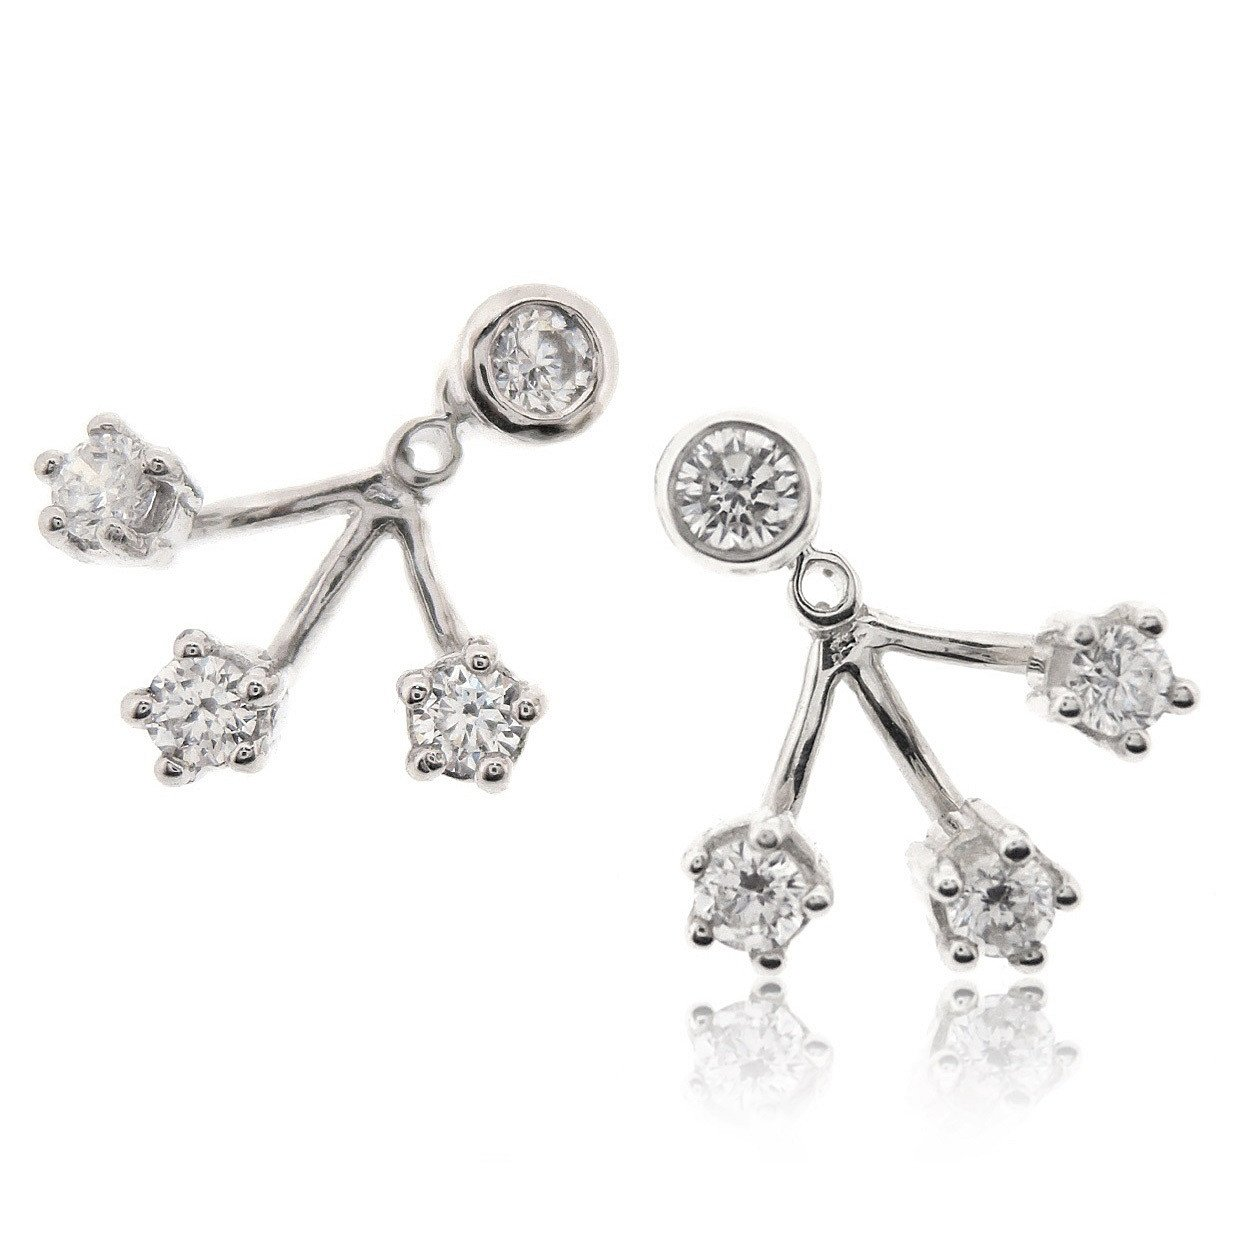 Sovats Woman Gift Two Way Earrings''CZ'' by SOVATS